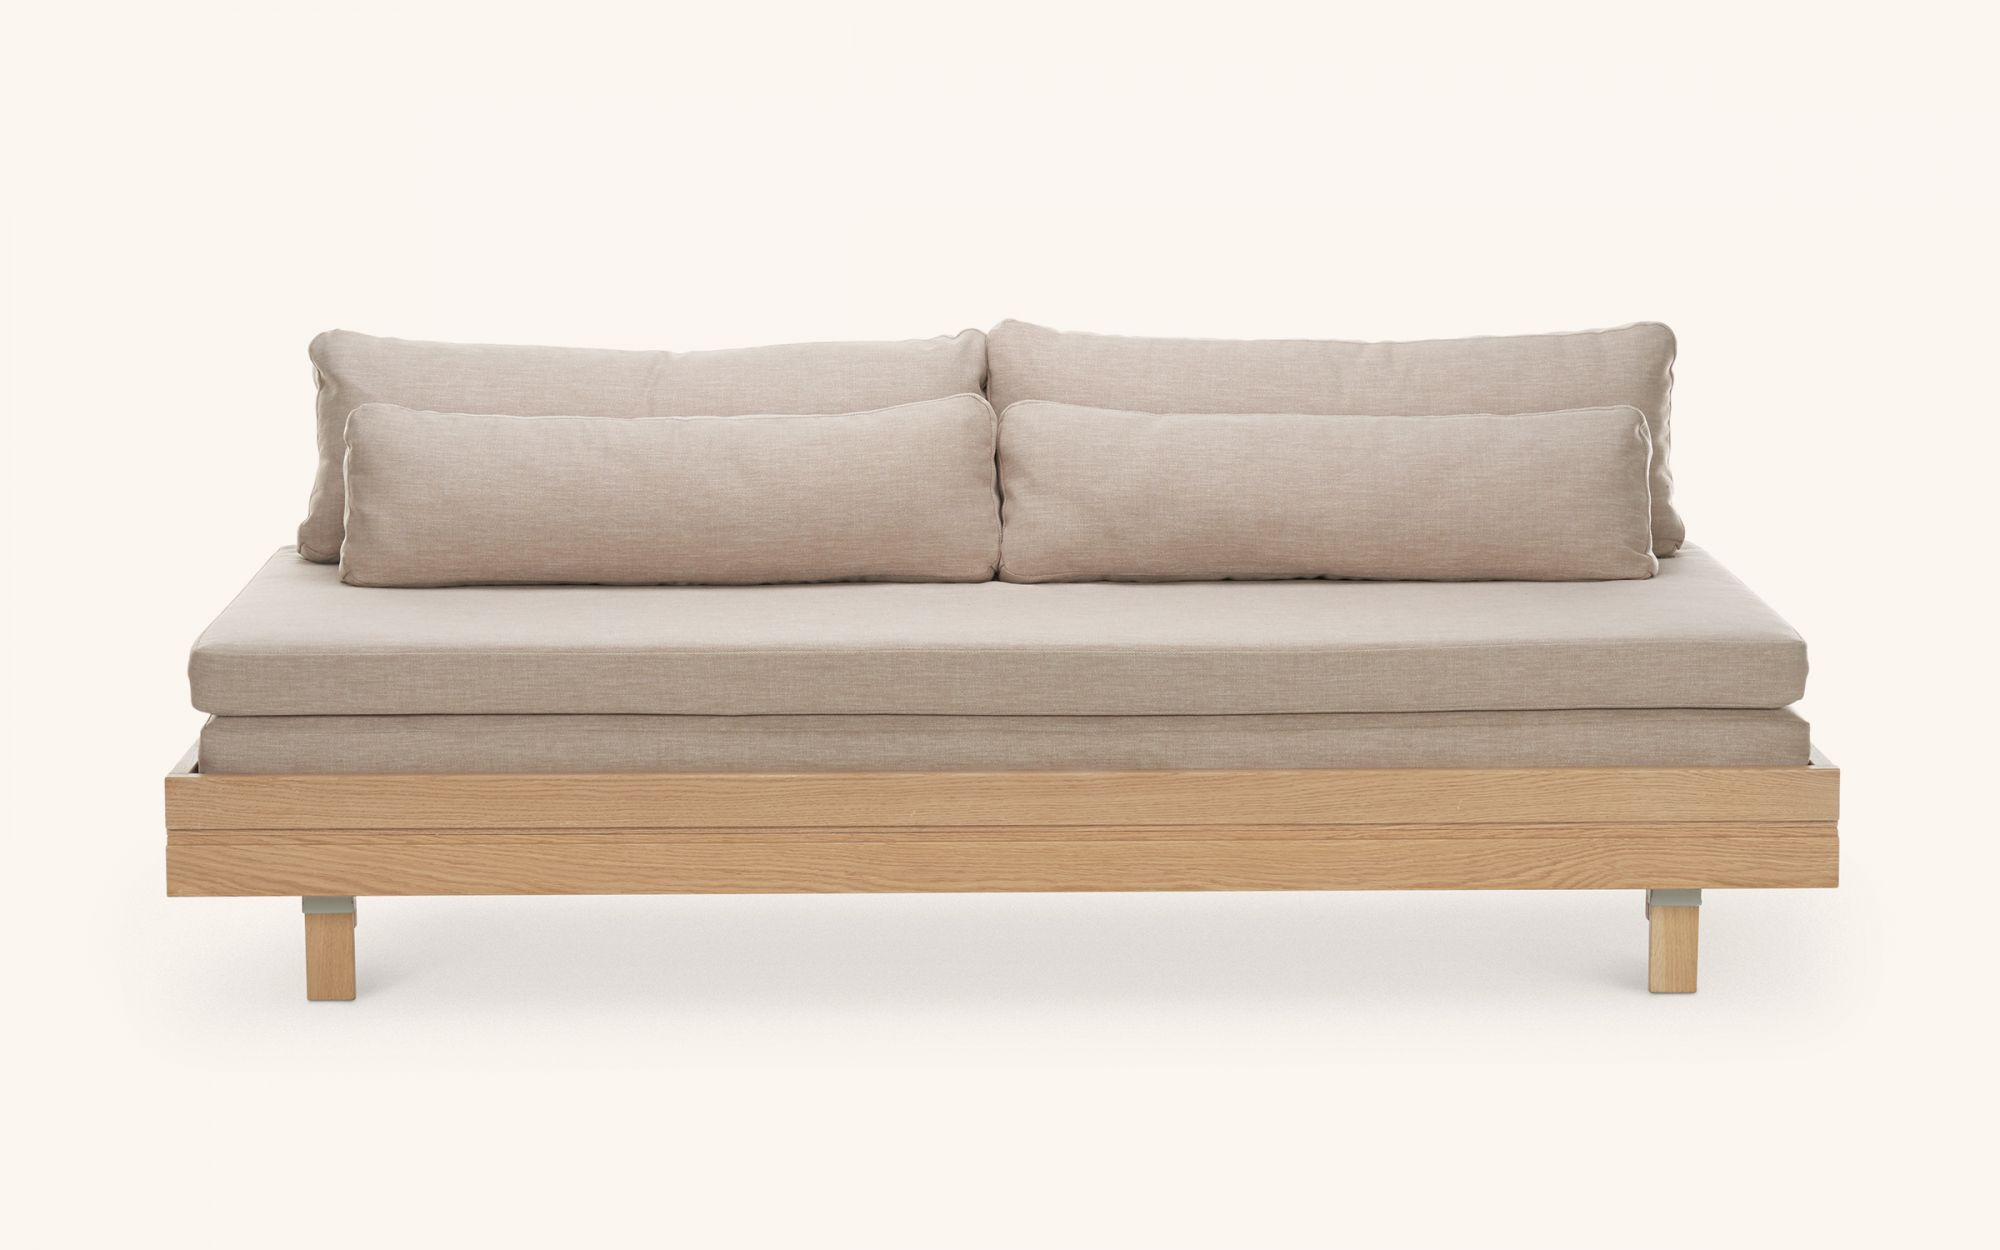 Day&Night-sofa bed